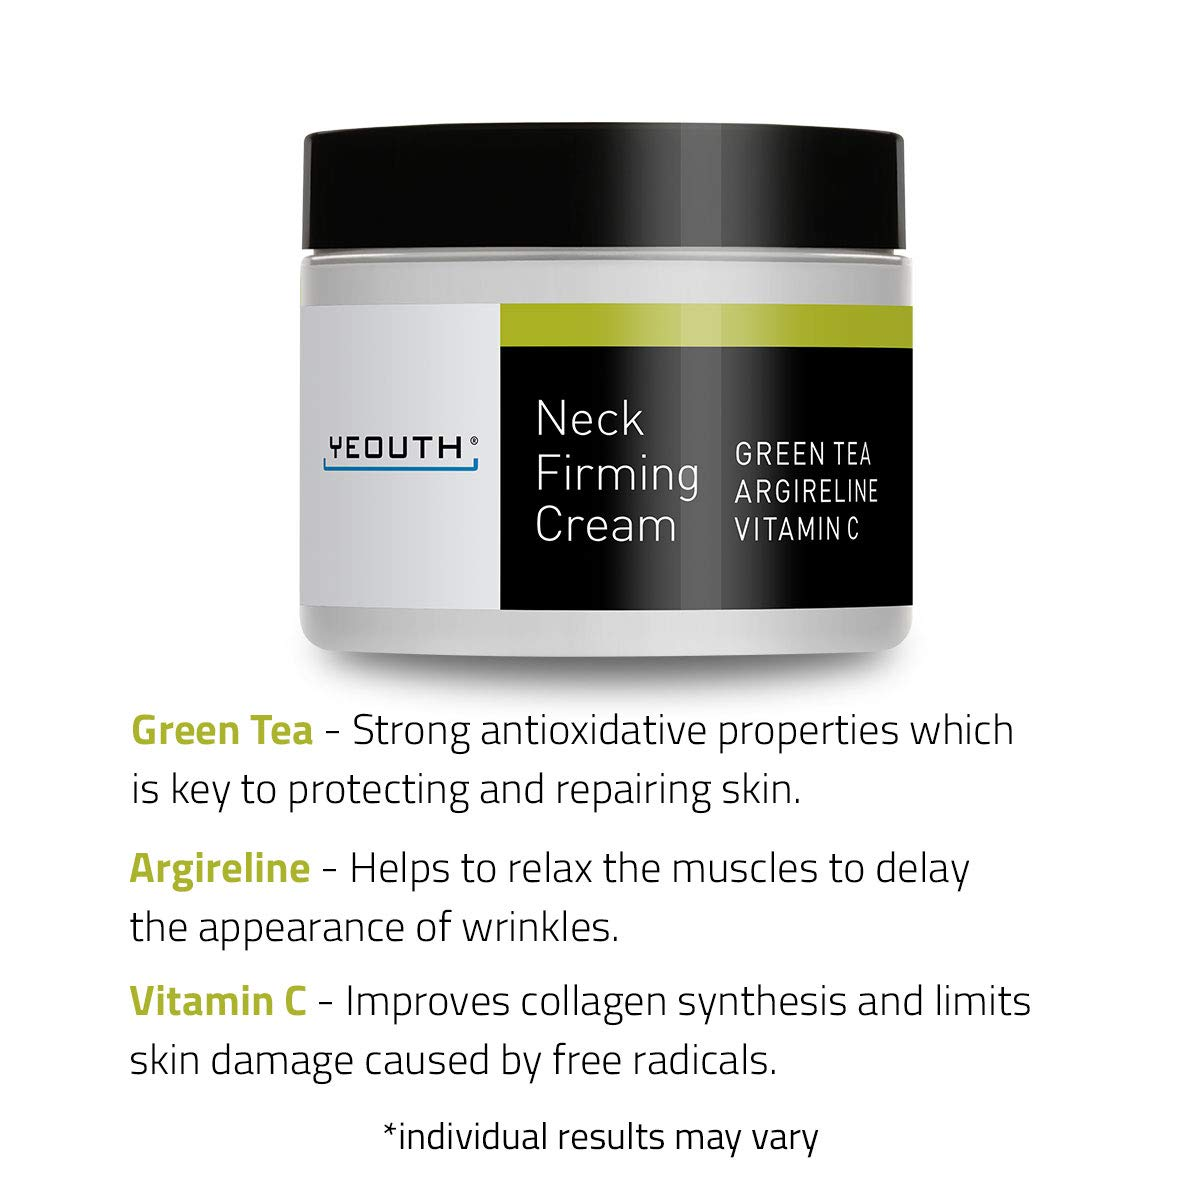 YEOUTH Neck Cream for Firming, Anti Aging Wrinkle Cream Moisturizer, Skin Tightening, Helps Double Chin, Turkey Neck Tightener, Repair Crepe Skin with Green Tea, Argireline, Vitamin C - 2oz (2oz): Beauty